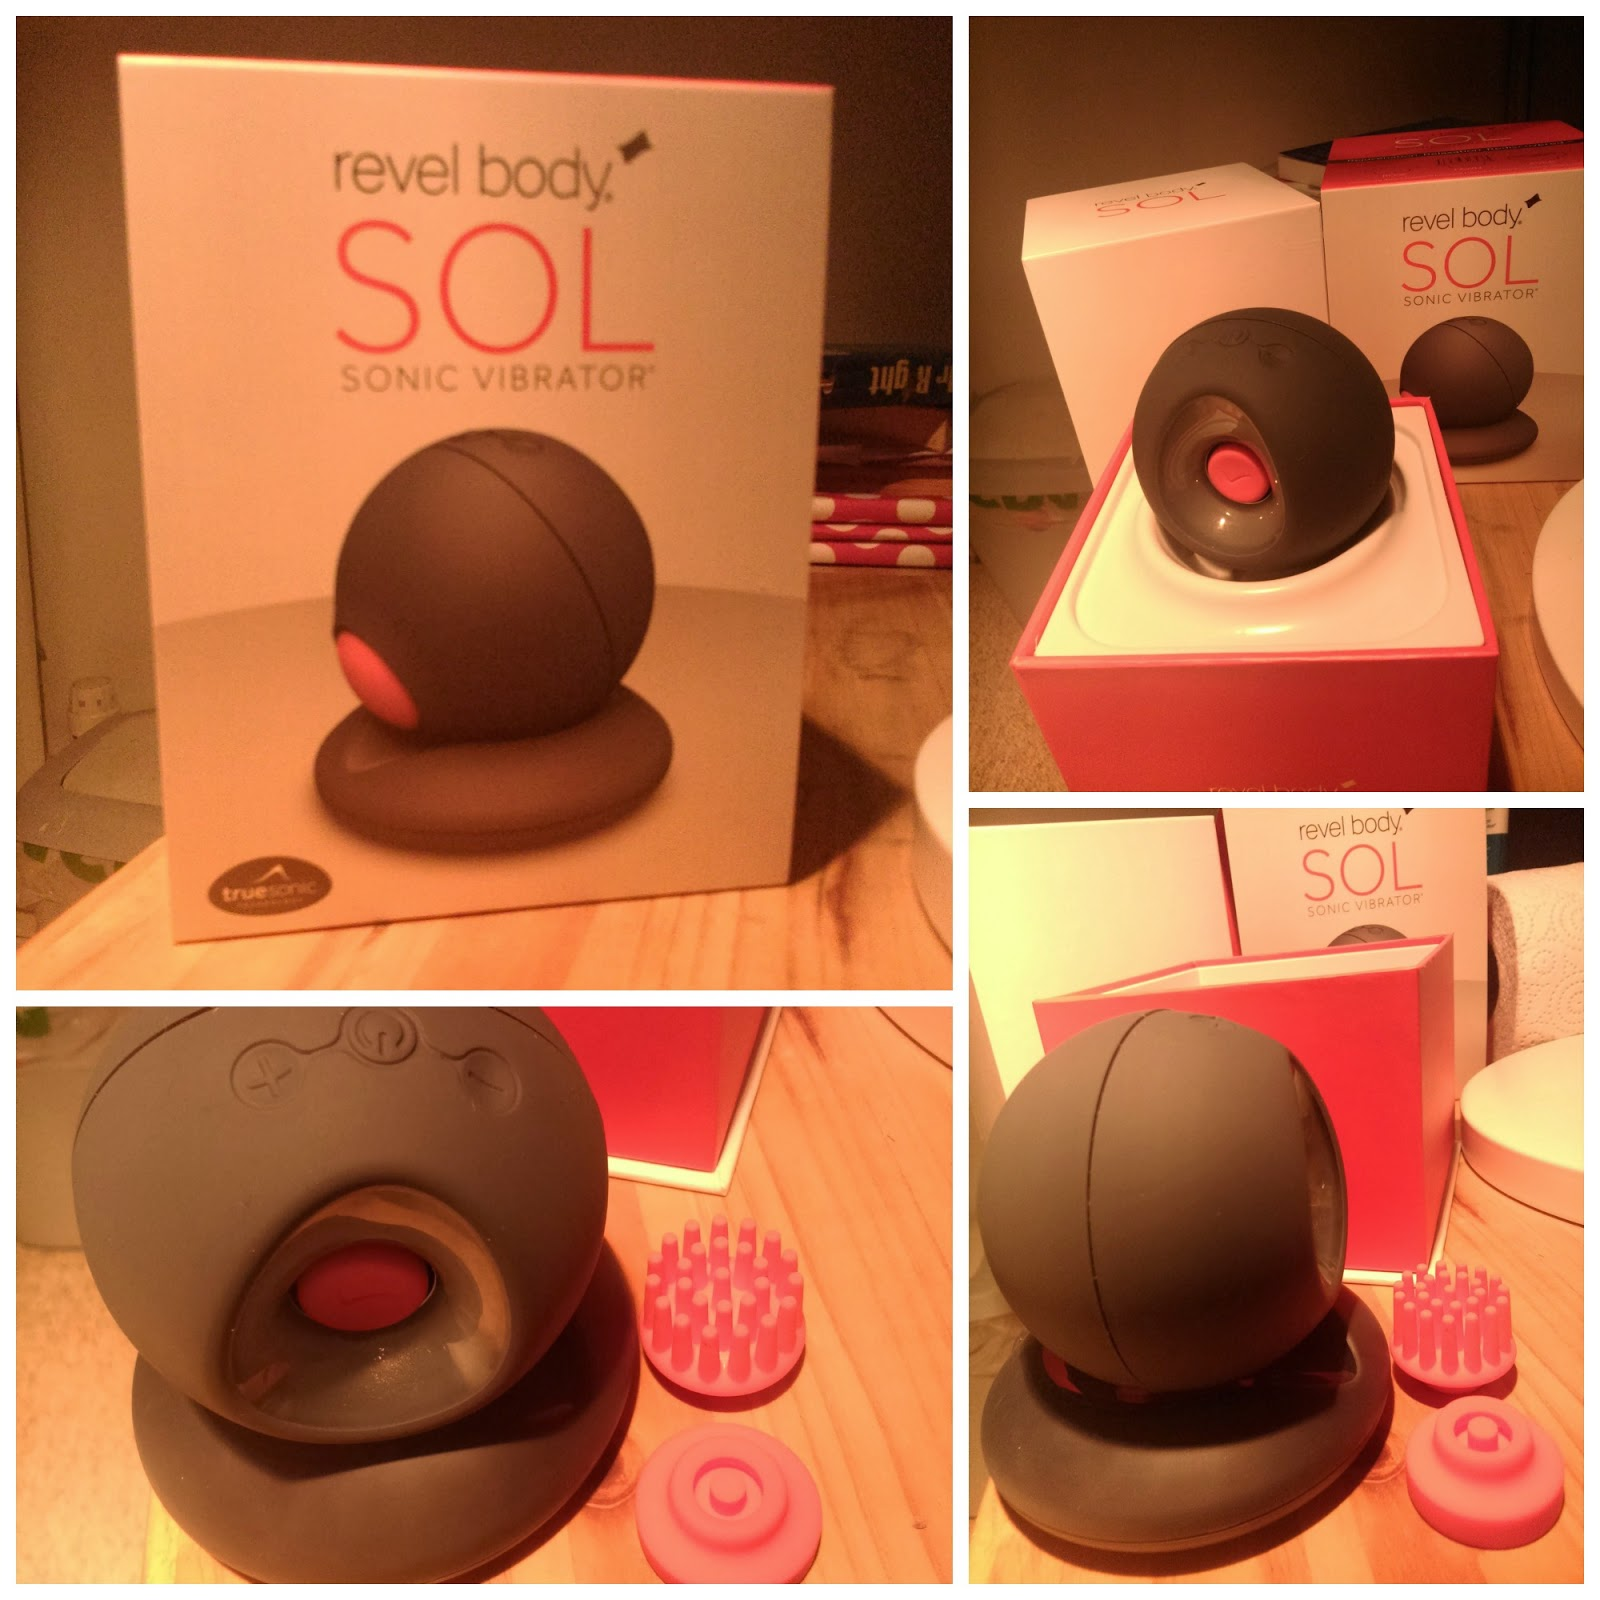 revel body sol sonic vibrator review uk